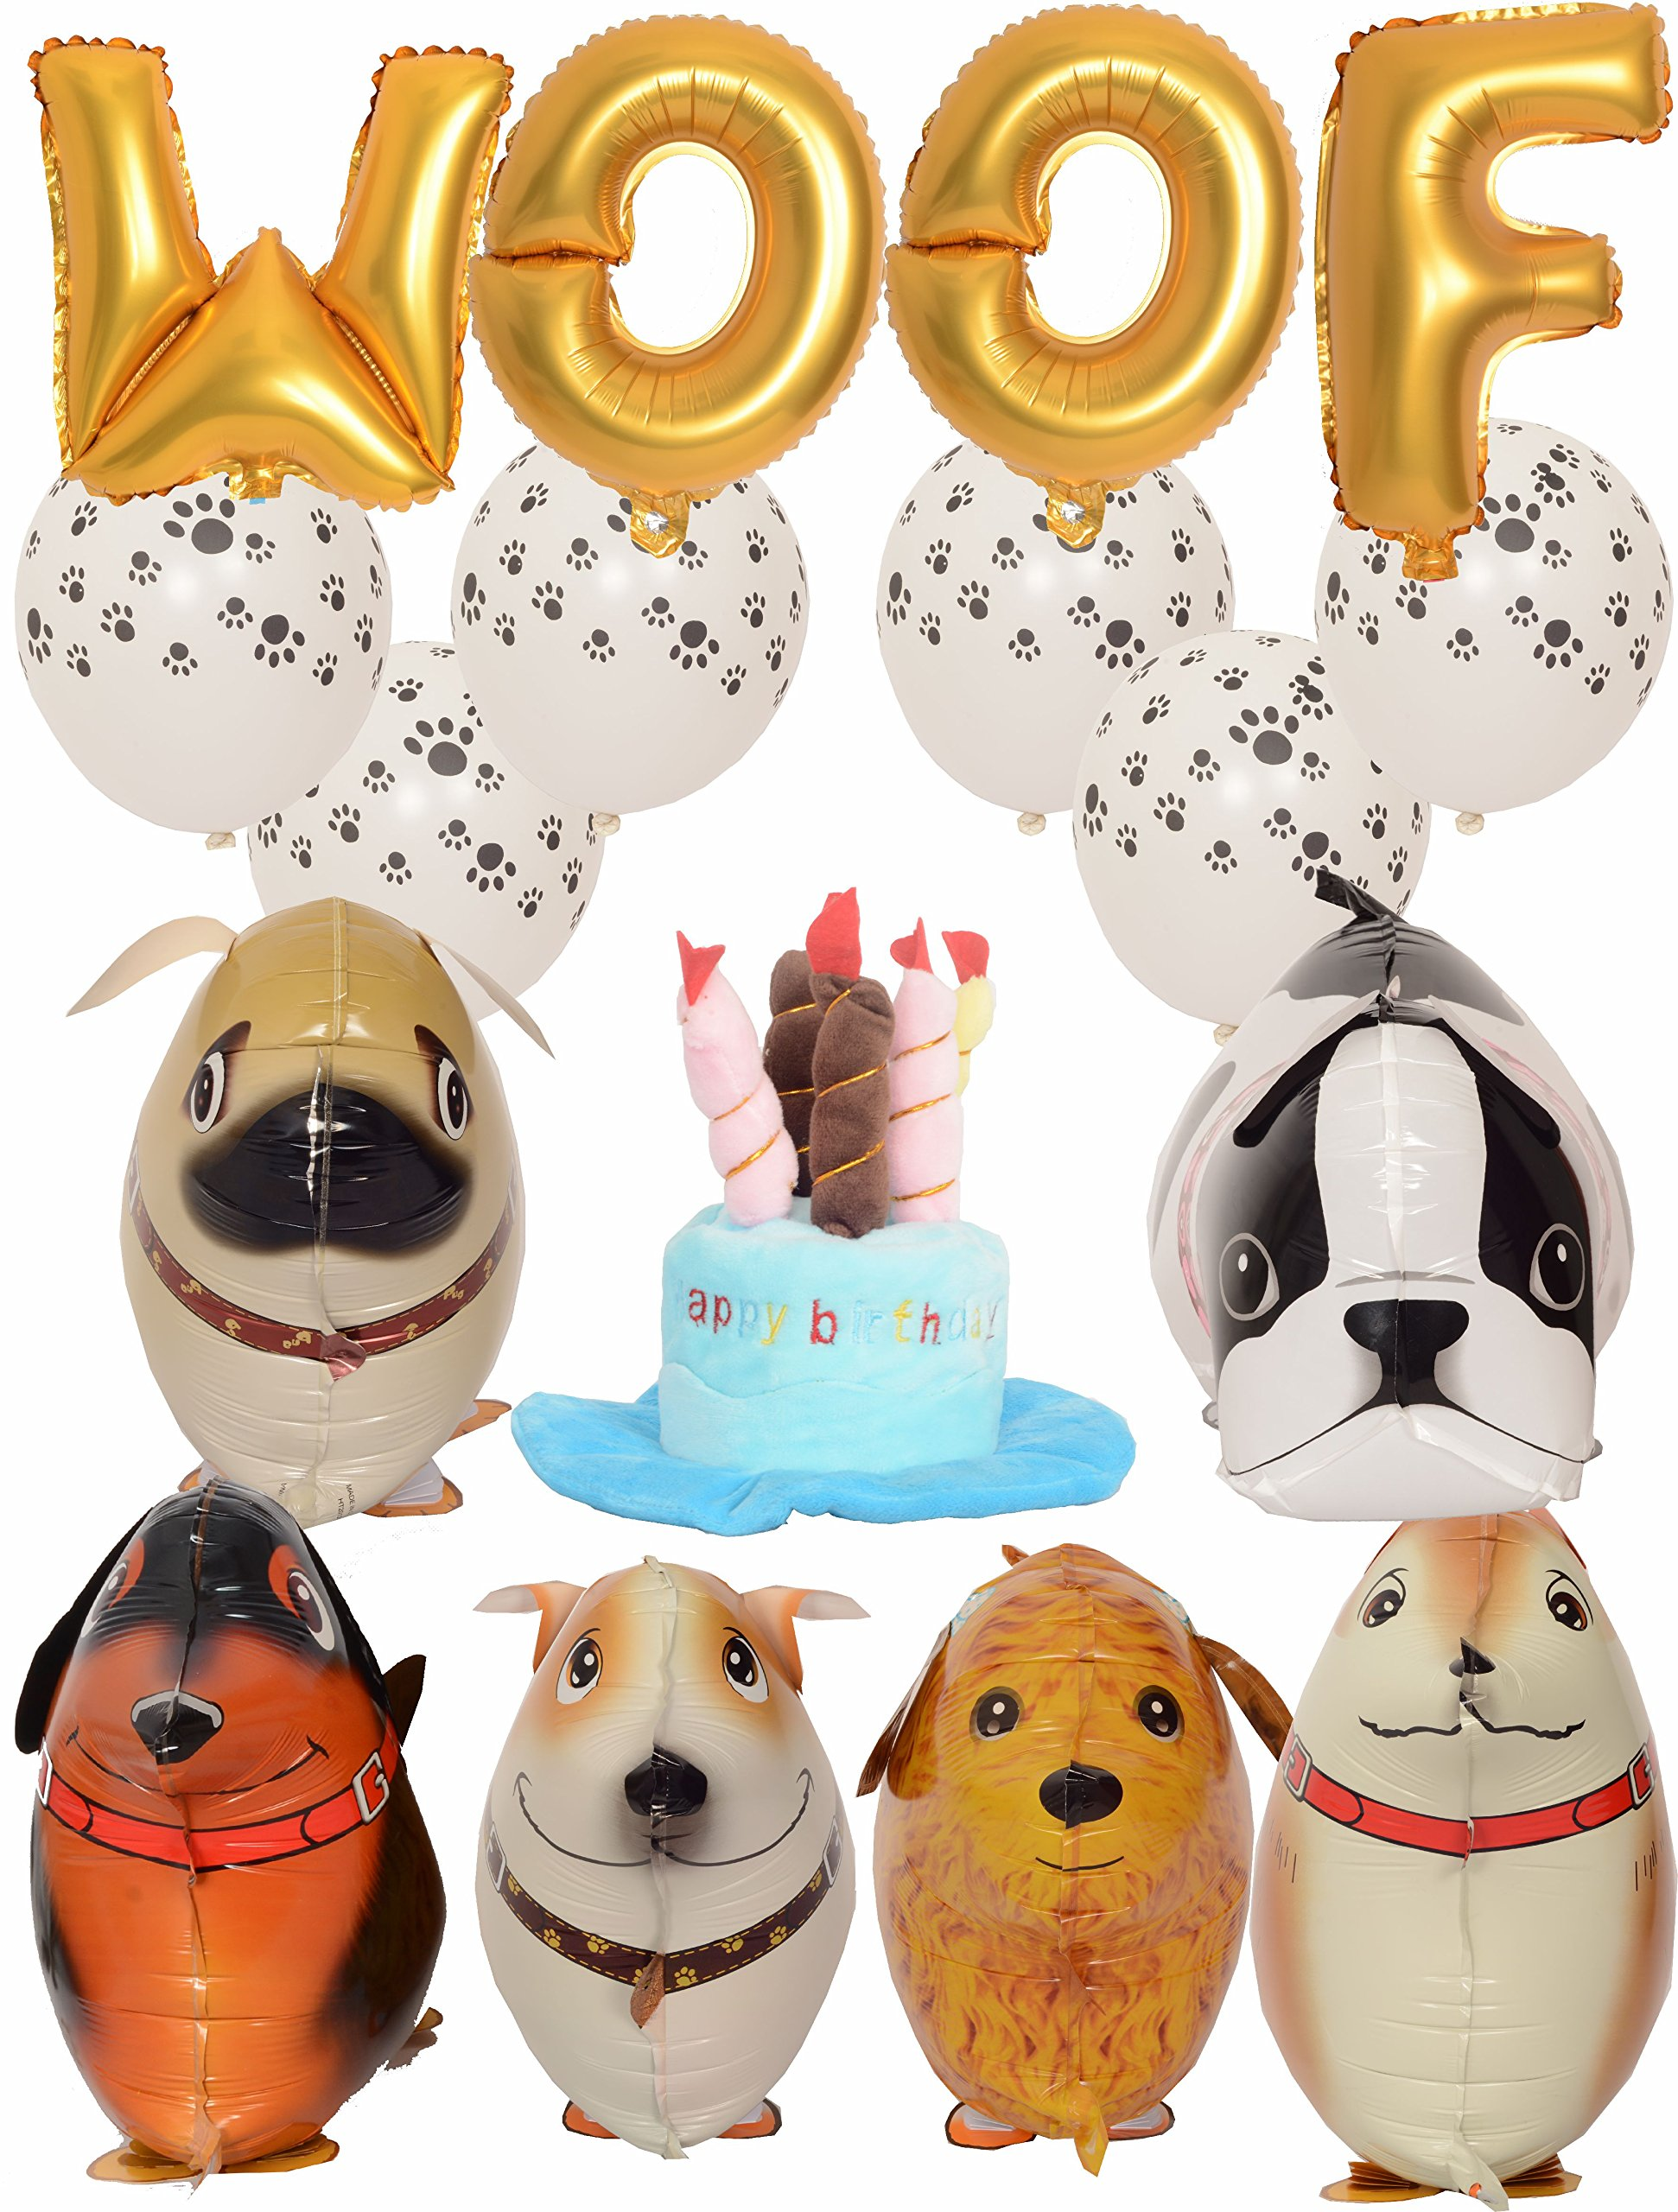 Meant2ToBe Dog Birthday Decorations Kit, 12 Inch WOOF Letter Ballons - 6Pc Walking Animal Pet Dog balloons - Paw Prints Round Biodegradable Latex Balloons - Blue Dog Birthday Hat by Meant2ToBe (Image #4)